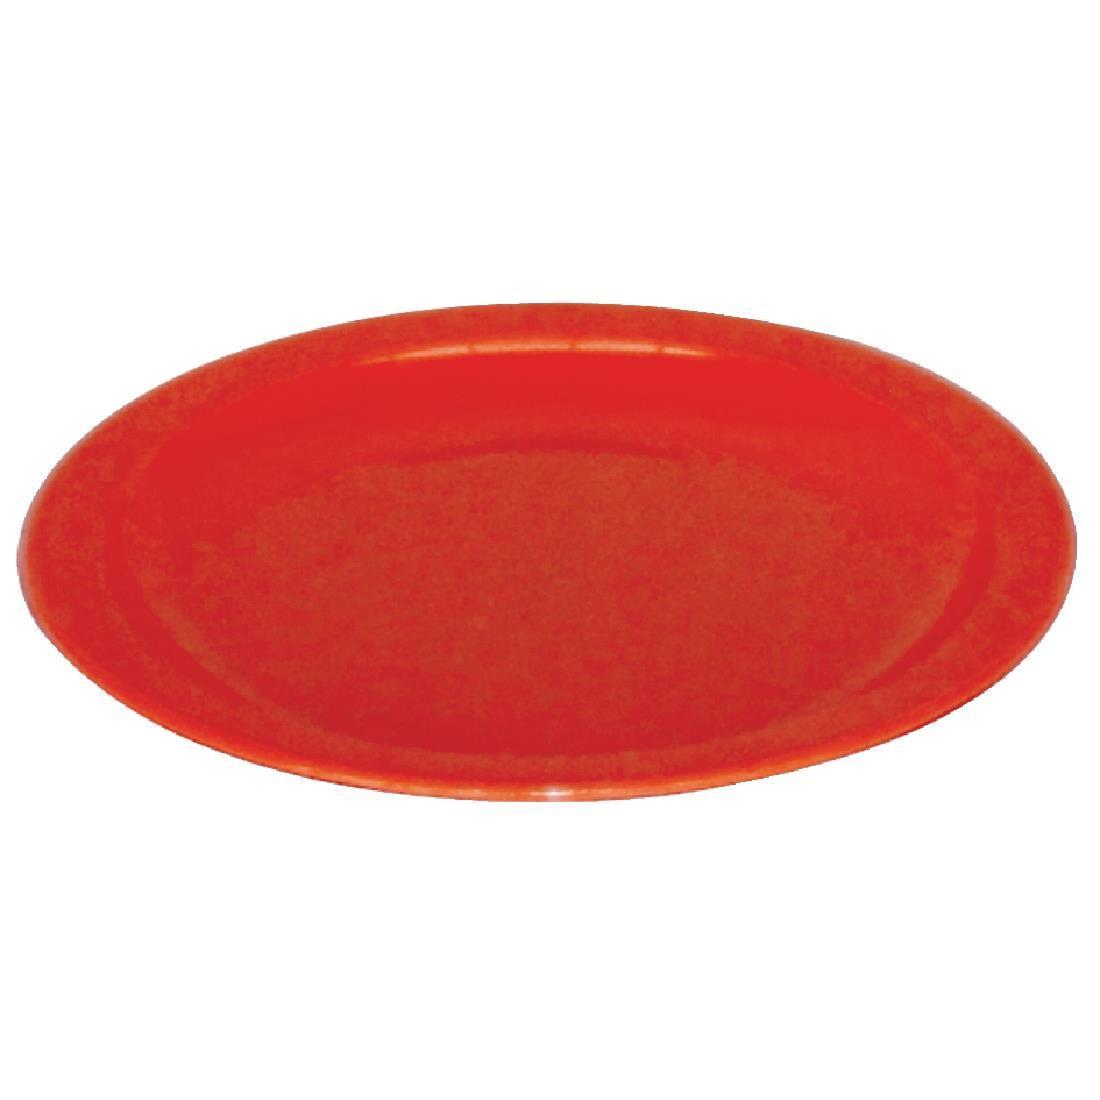 Kristallon Polycarbonate Plates Red 172mm - Case 12 - CB766